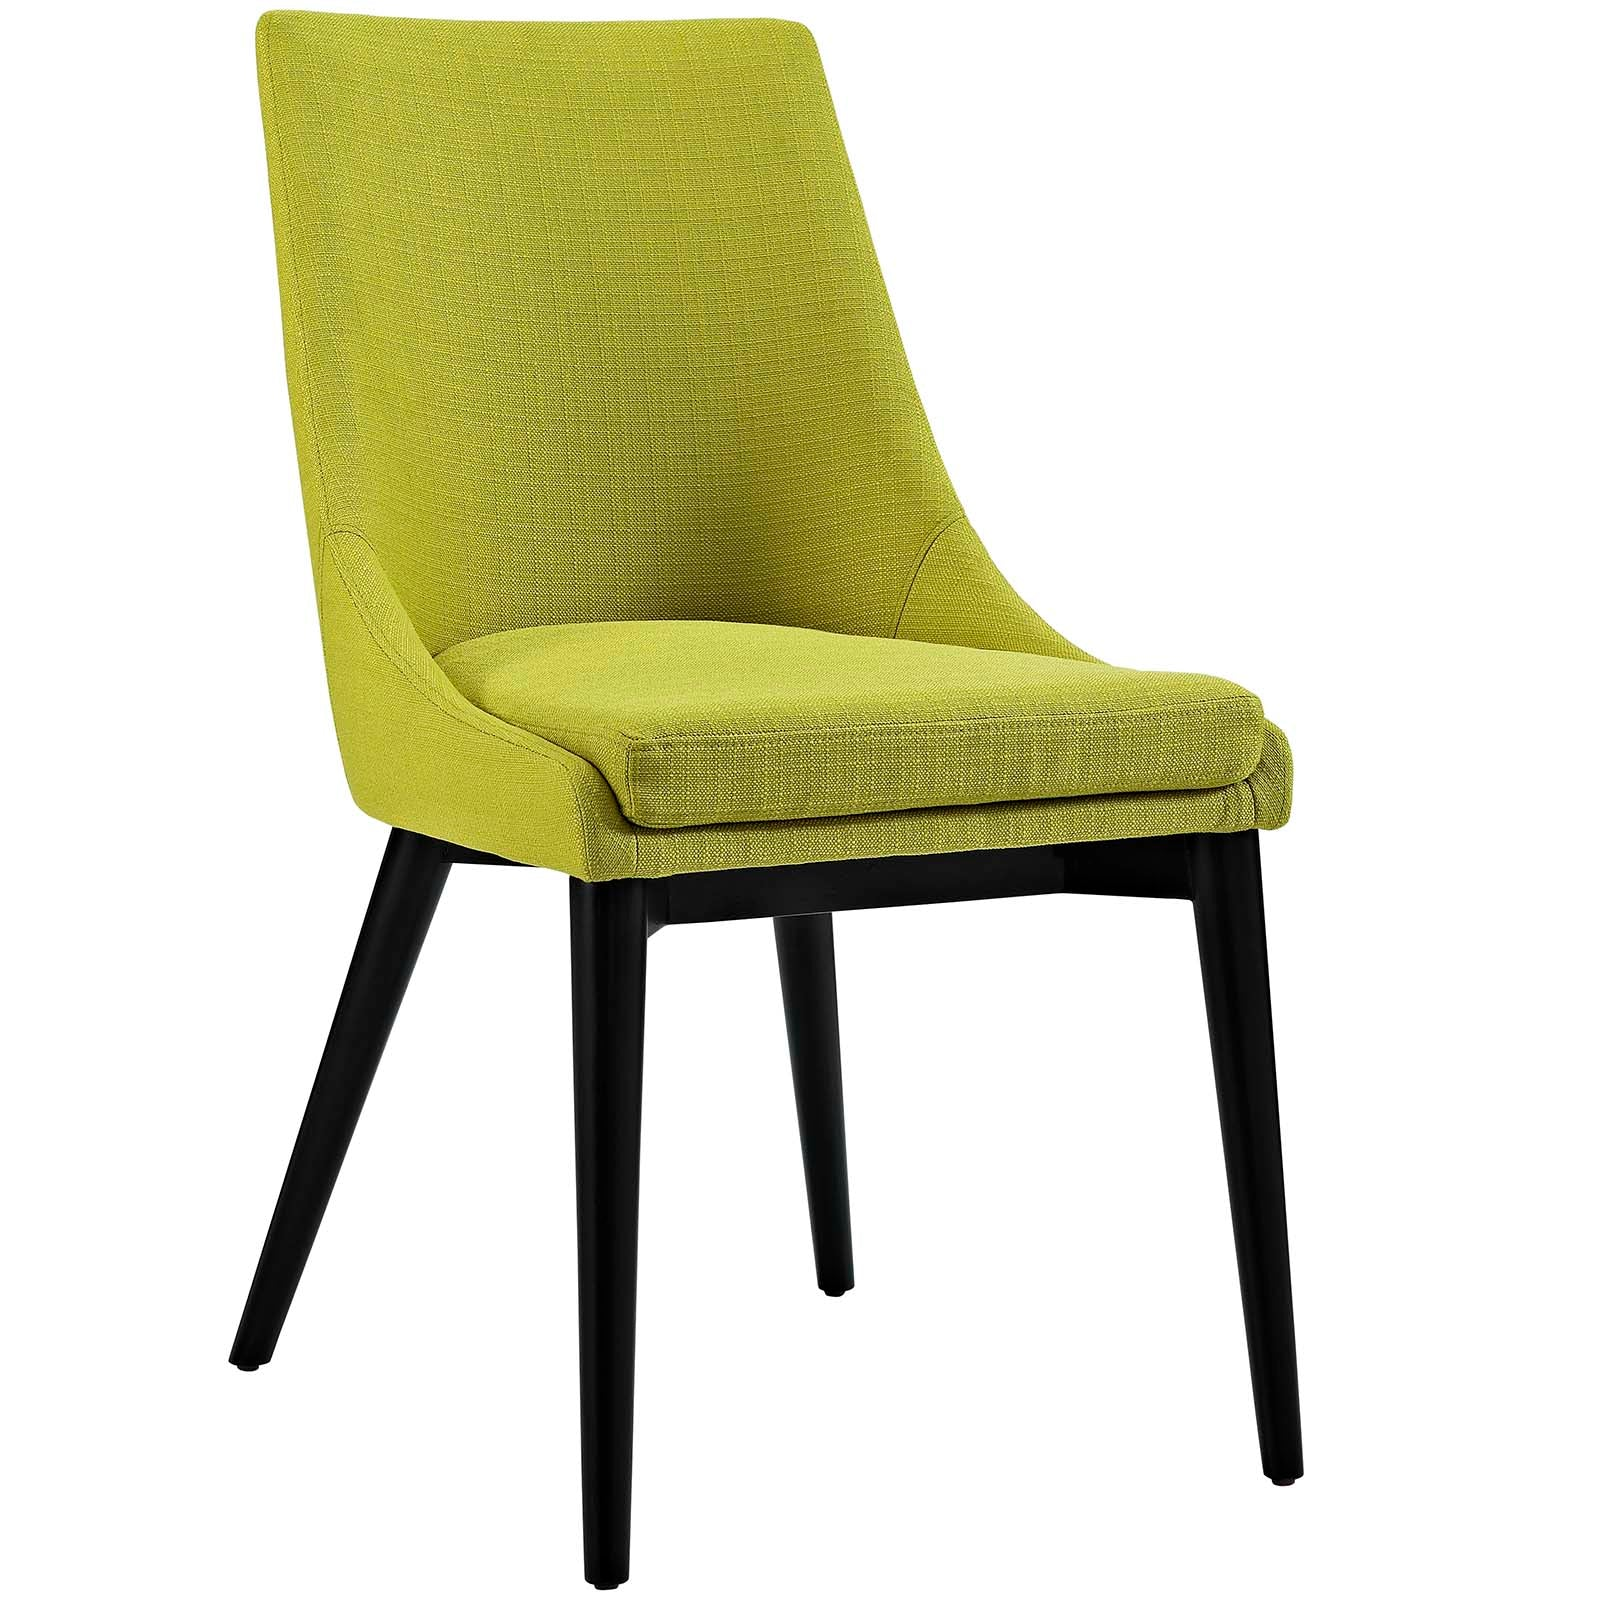 Modway Viscount Fabric Dining Chair Eei 2227 Bei Only